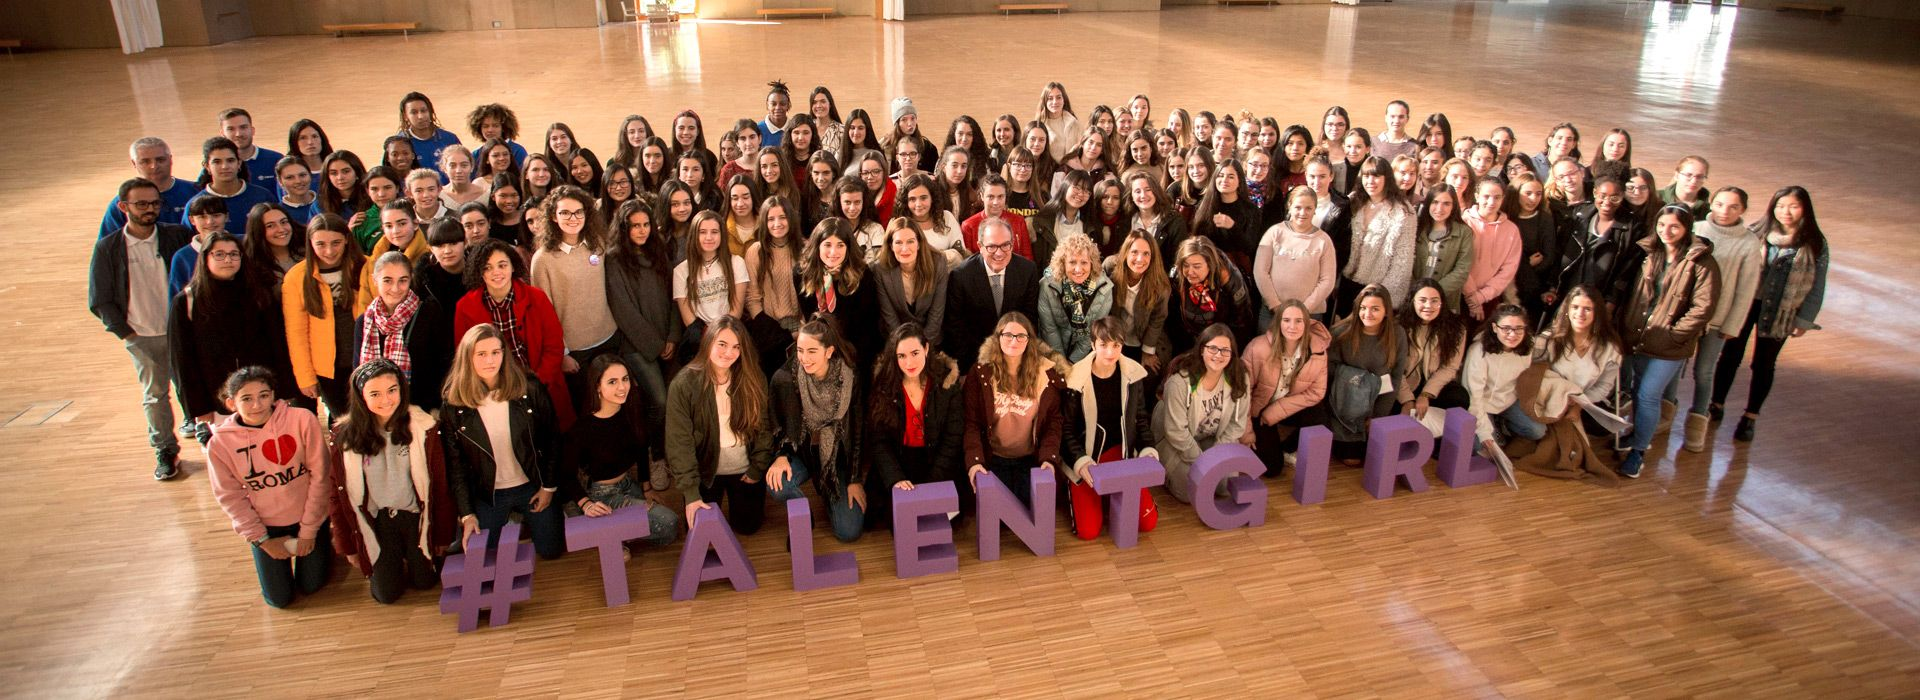 foto-familia-talent-girl